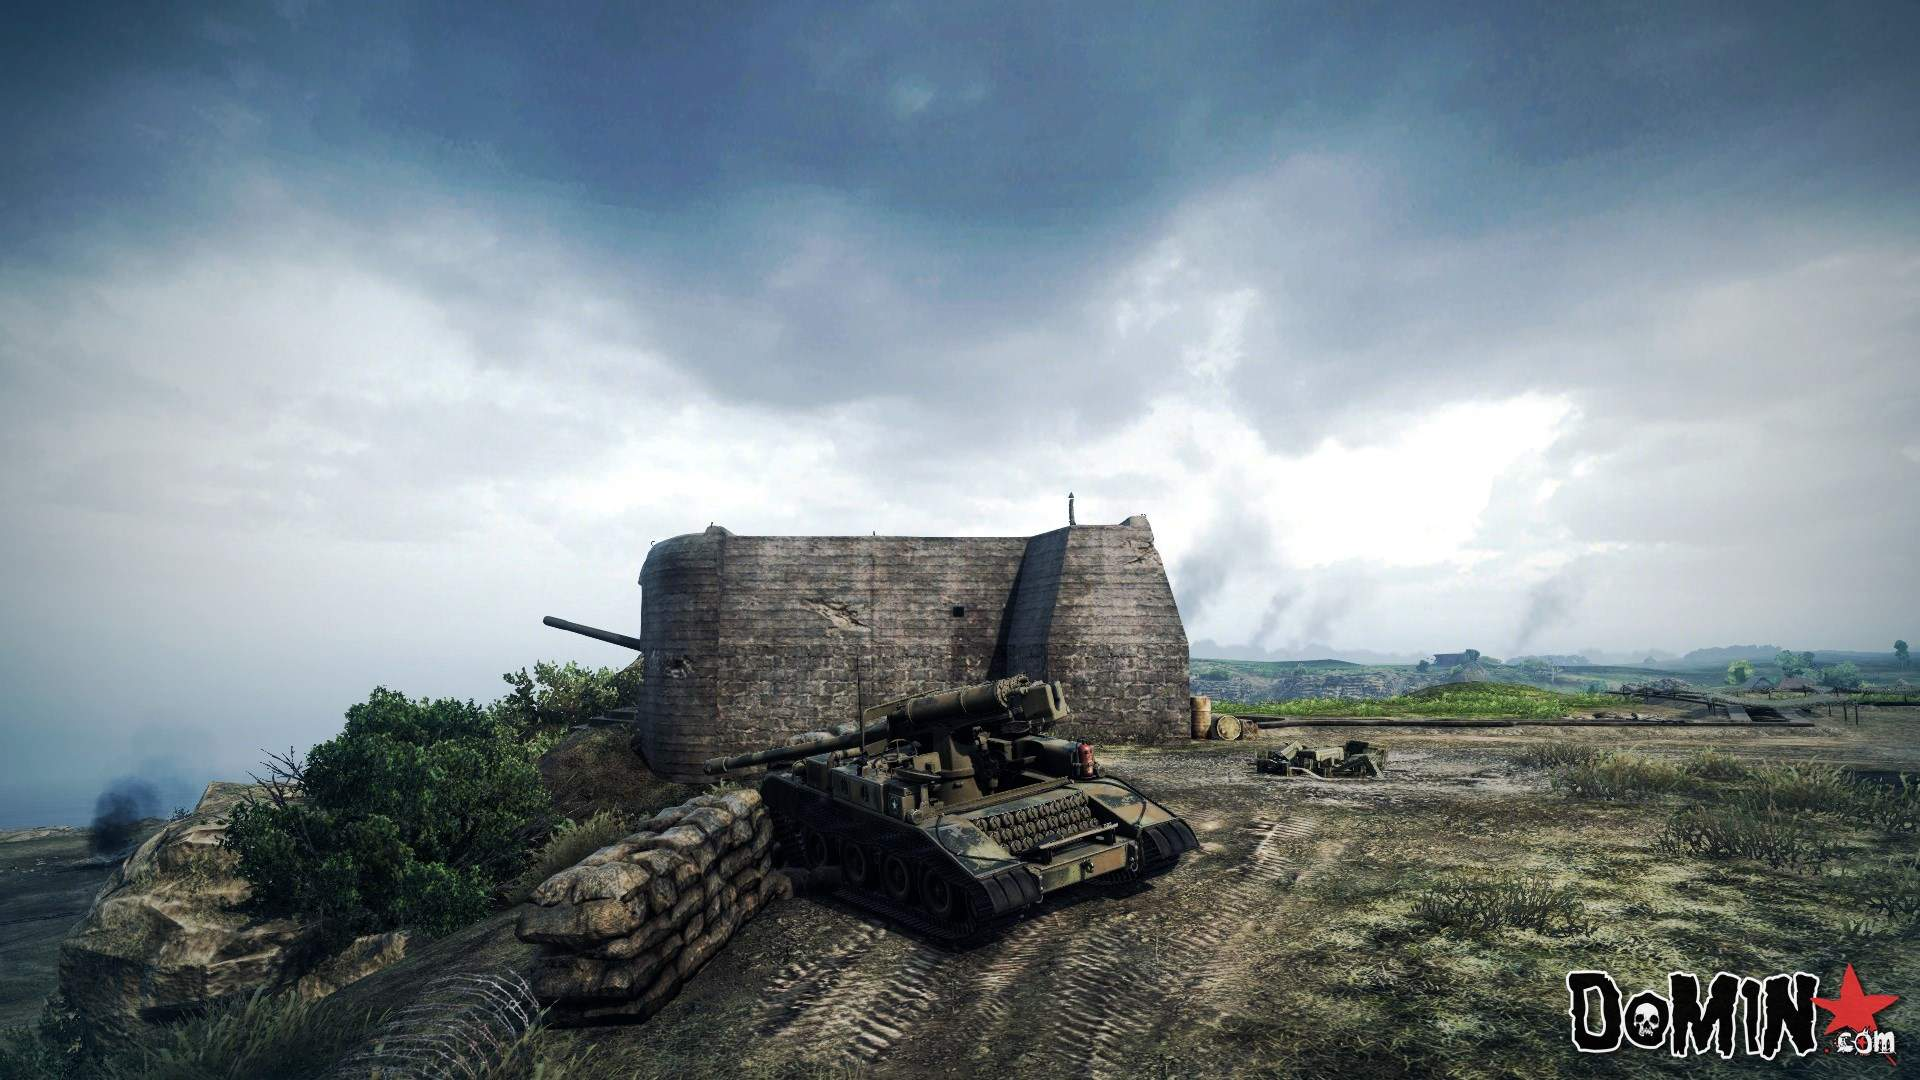 M 56 Scorpion For Sale In California: World Of Tanks M56 Scorpion Ingame Pictures